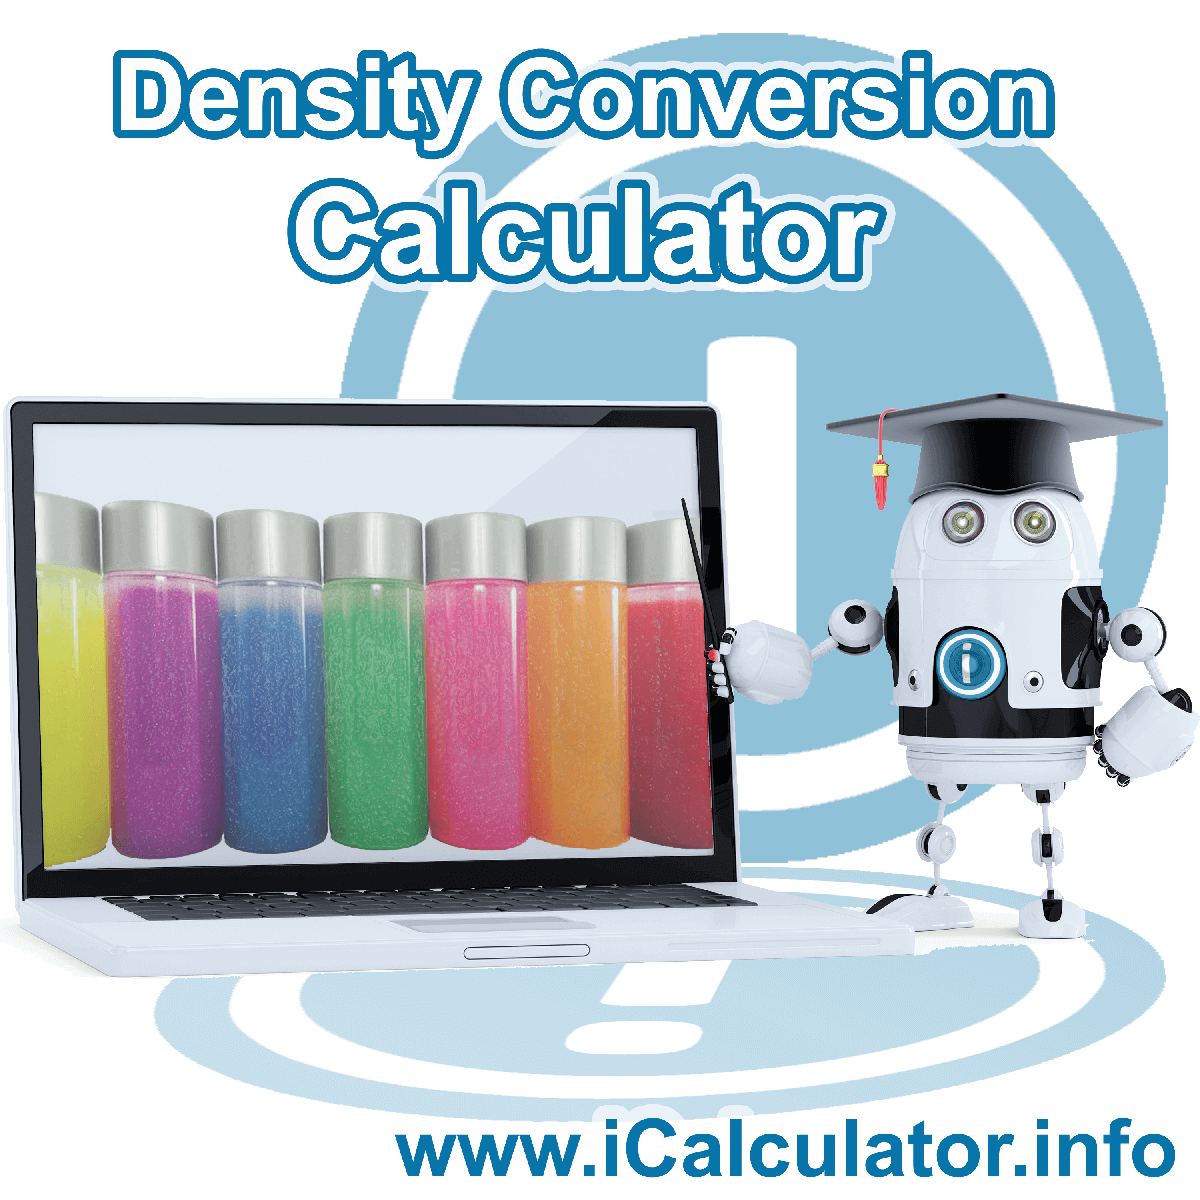 Density Calculator: This image shows Density Formula with associated calculations used by the Density Calculator